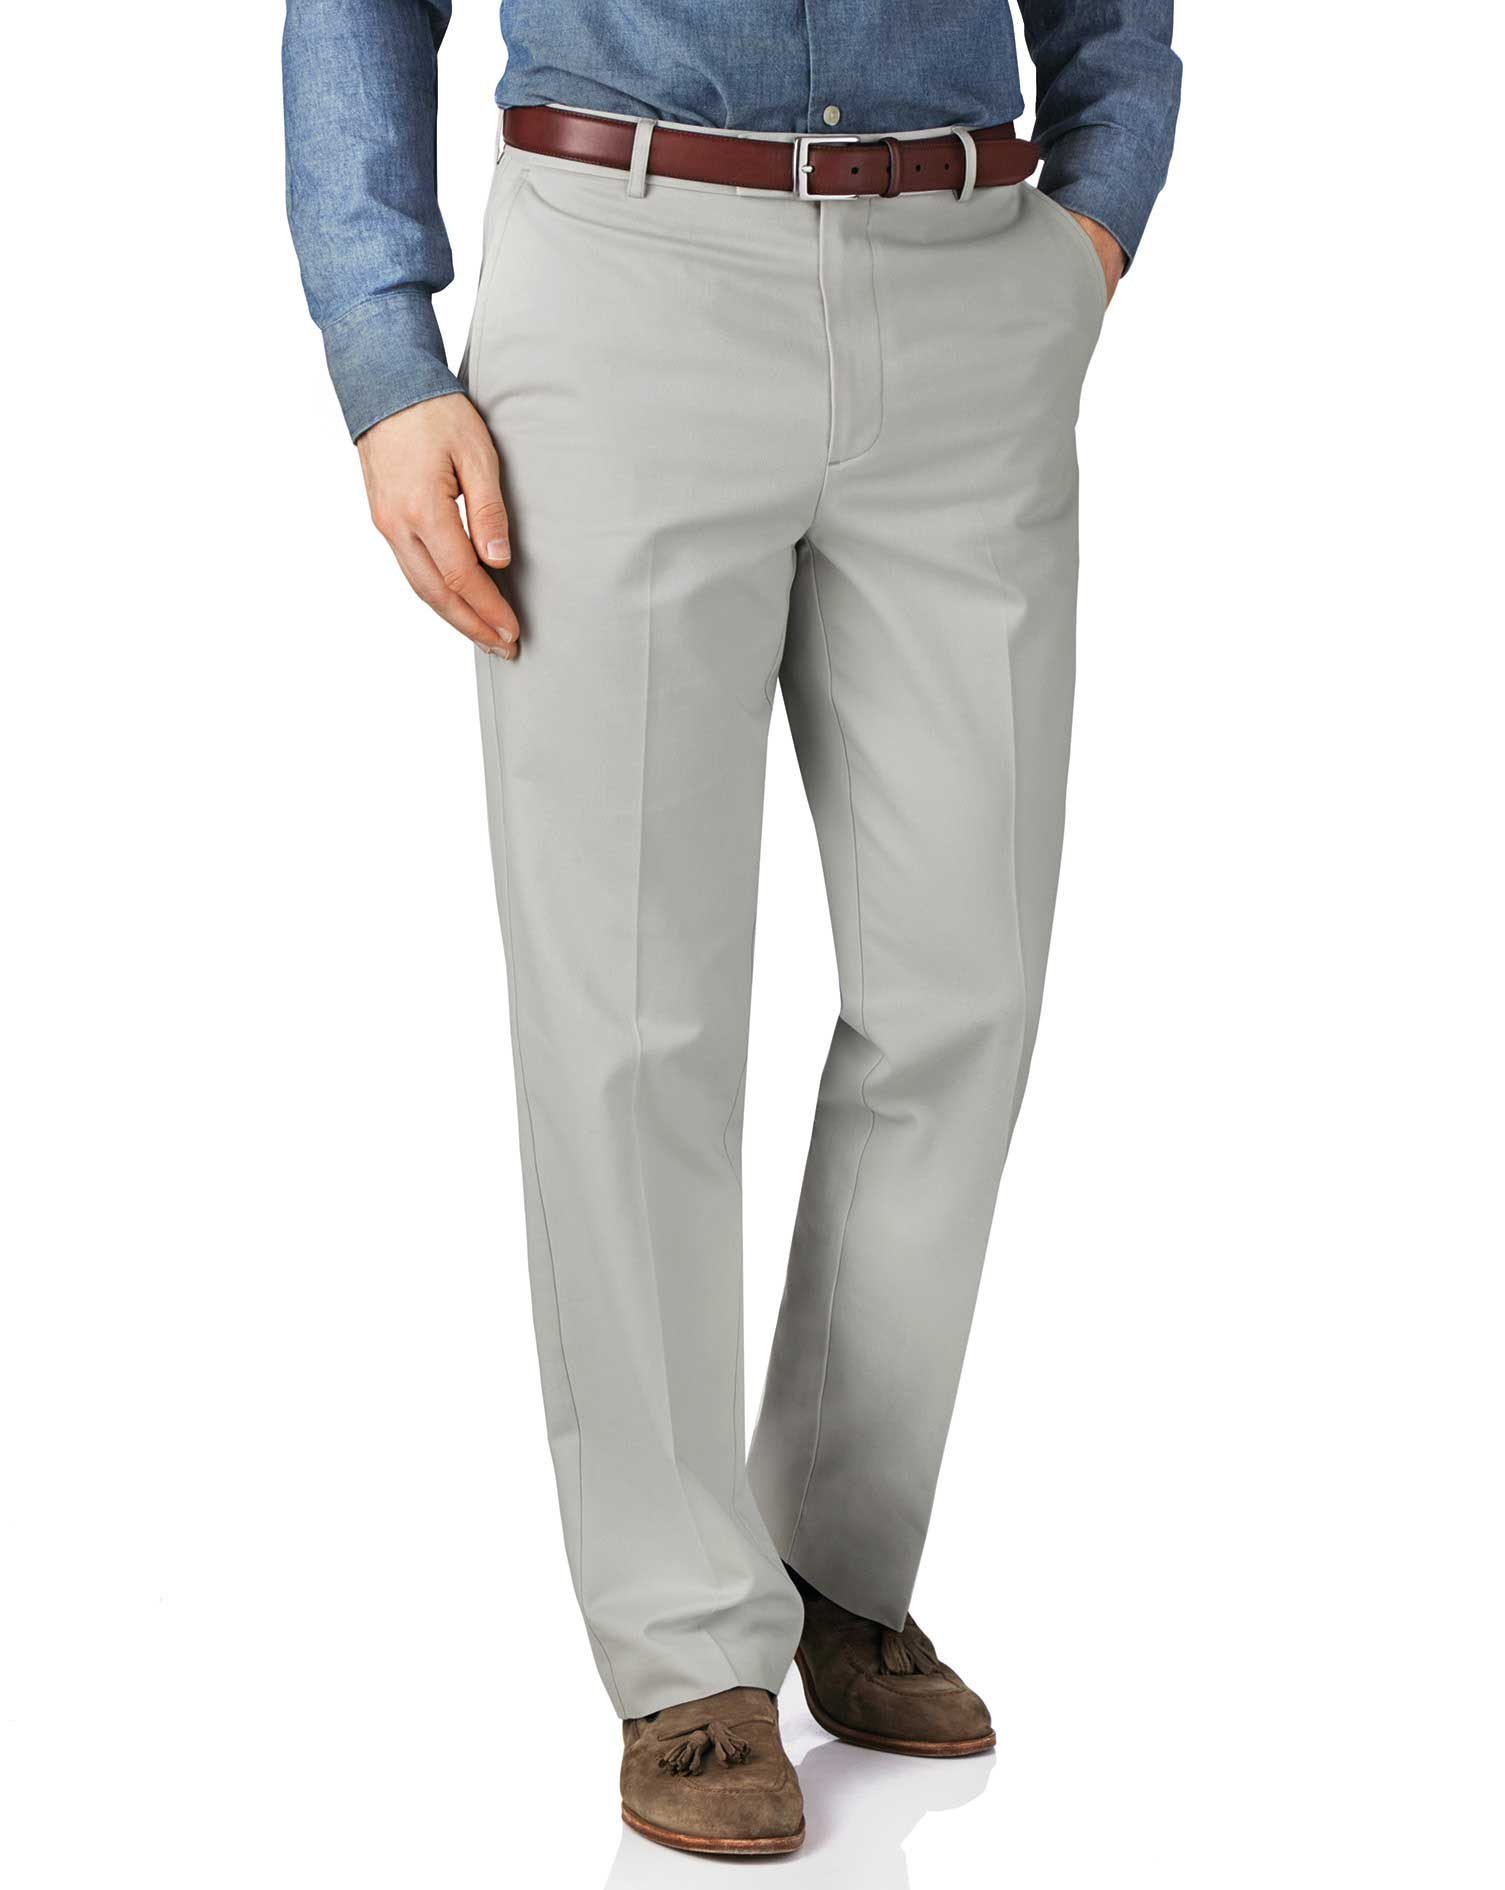 Silver Grey Classic Fit Flat Front Non-Iron Cotton Chino Trousers Size W34 L30 by Charles Tyrwhitt